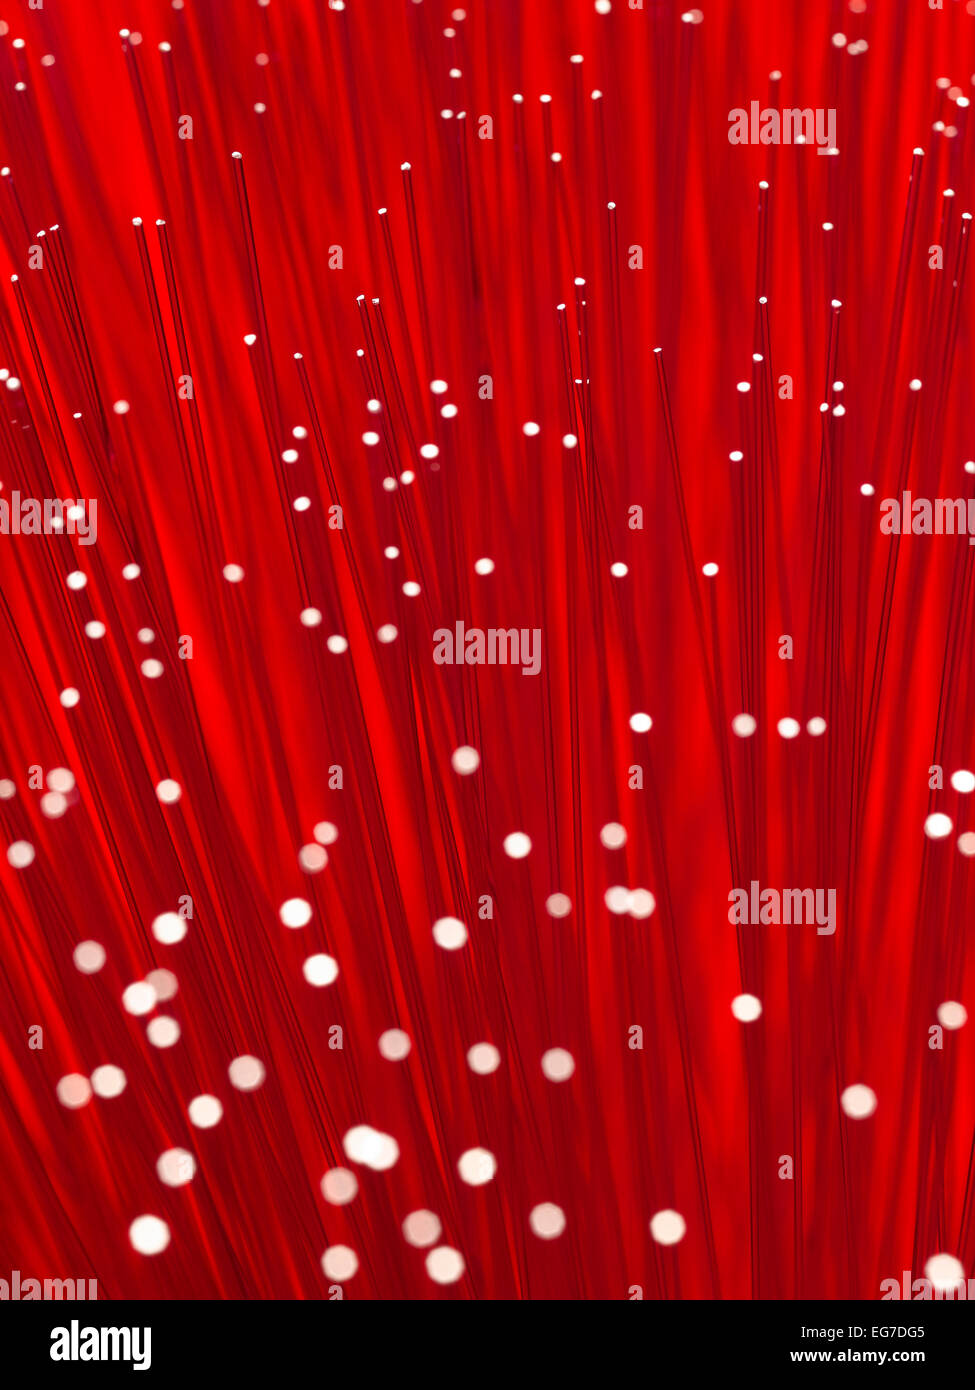 Fiber Optic cable with a Red Background - Stock Image